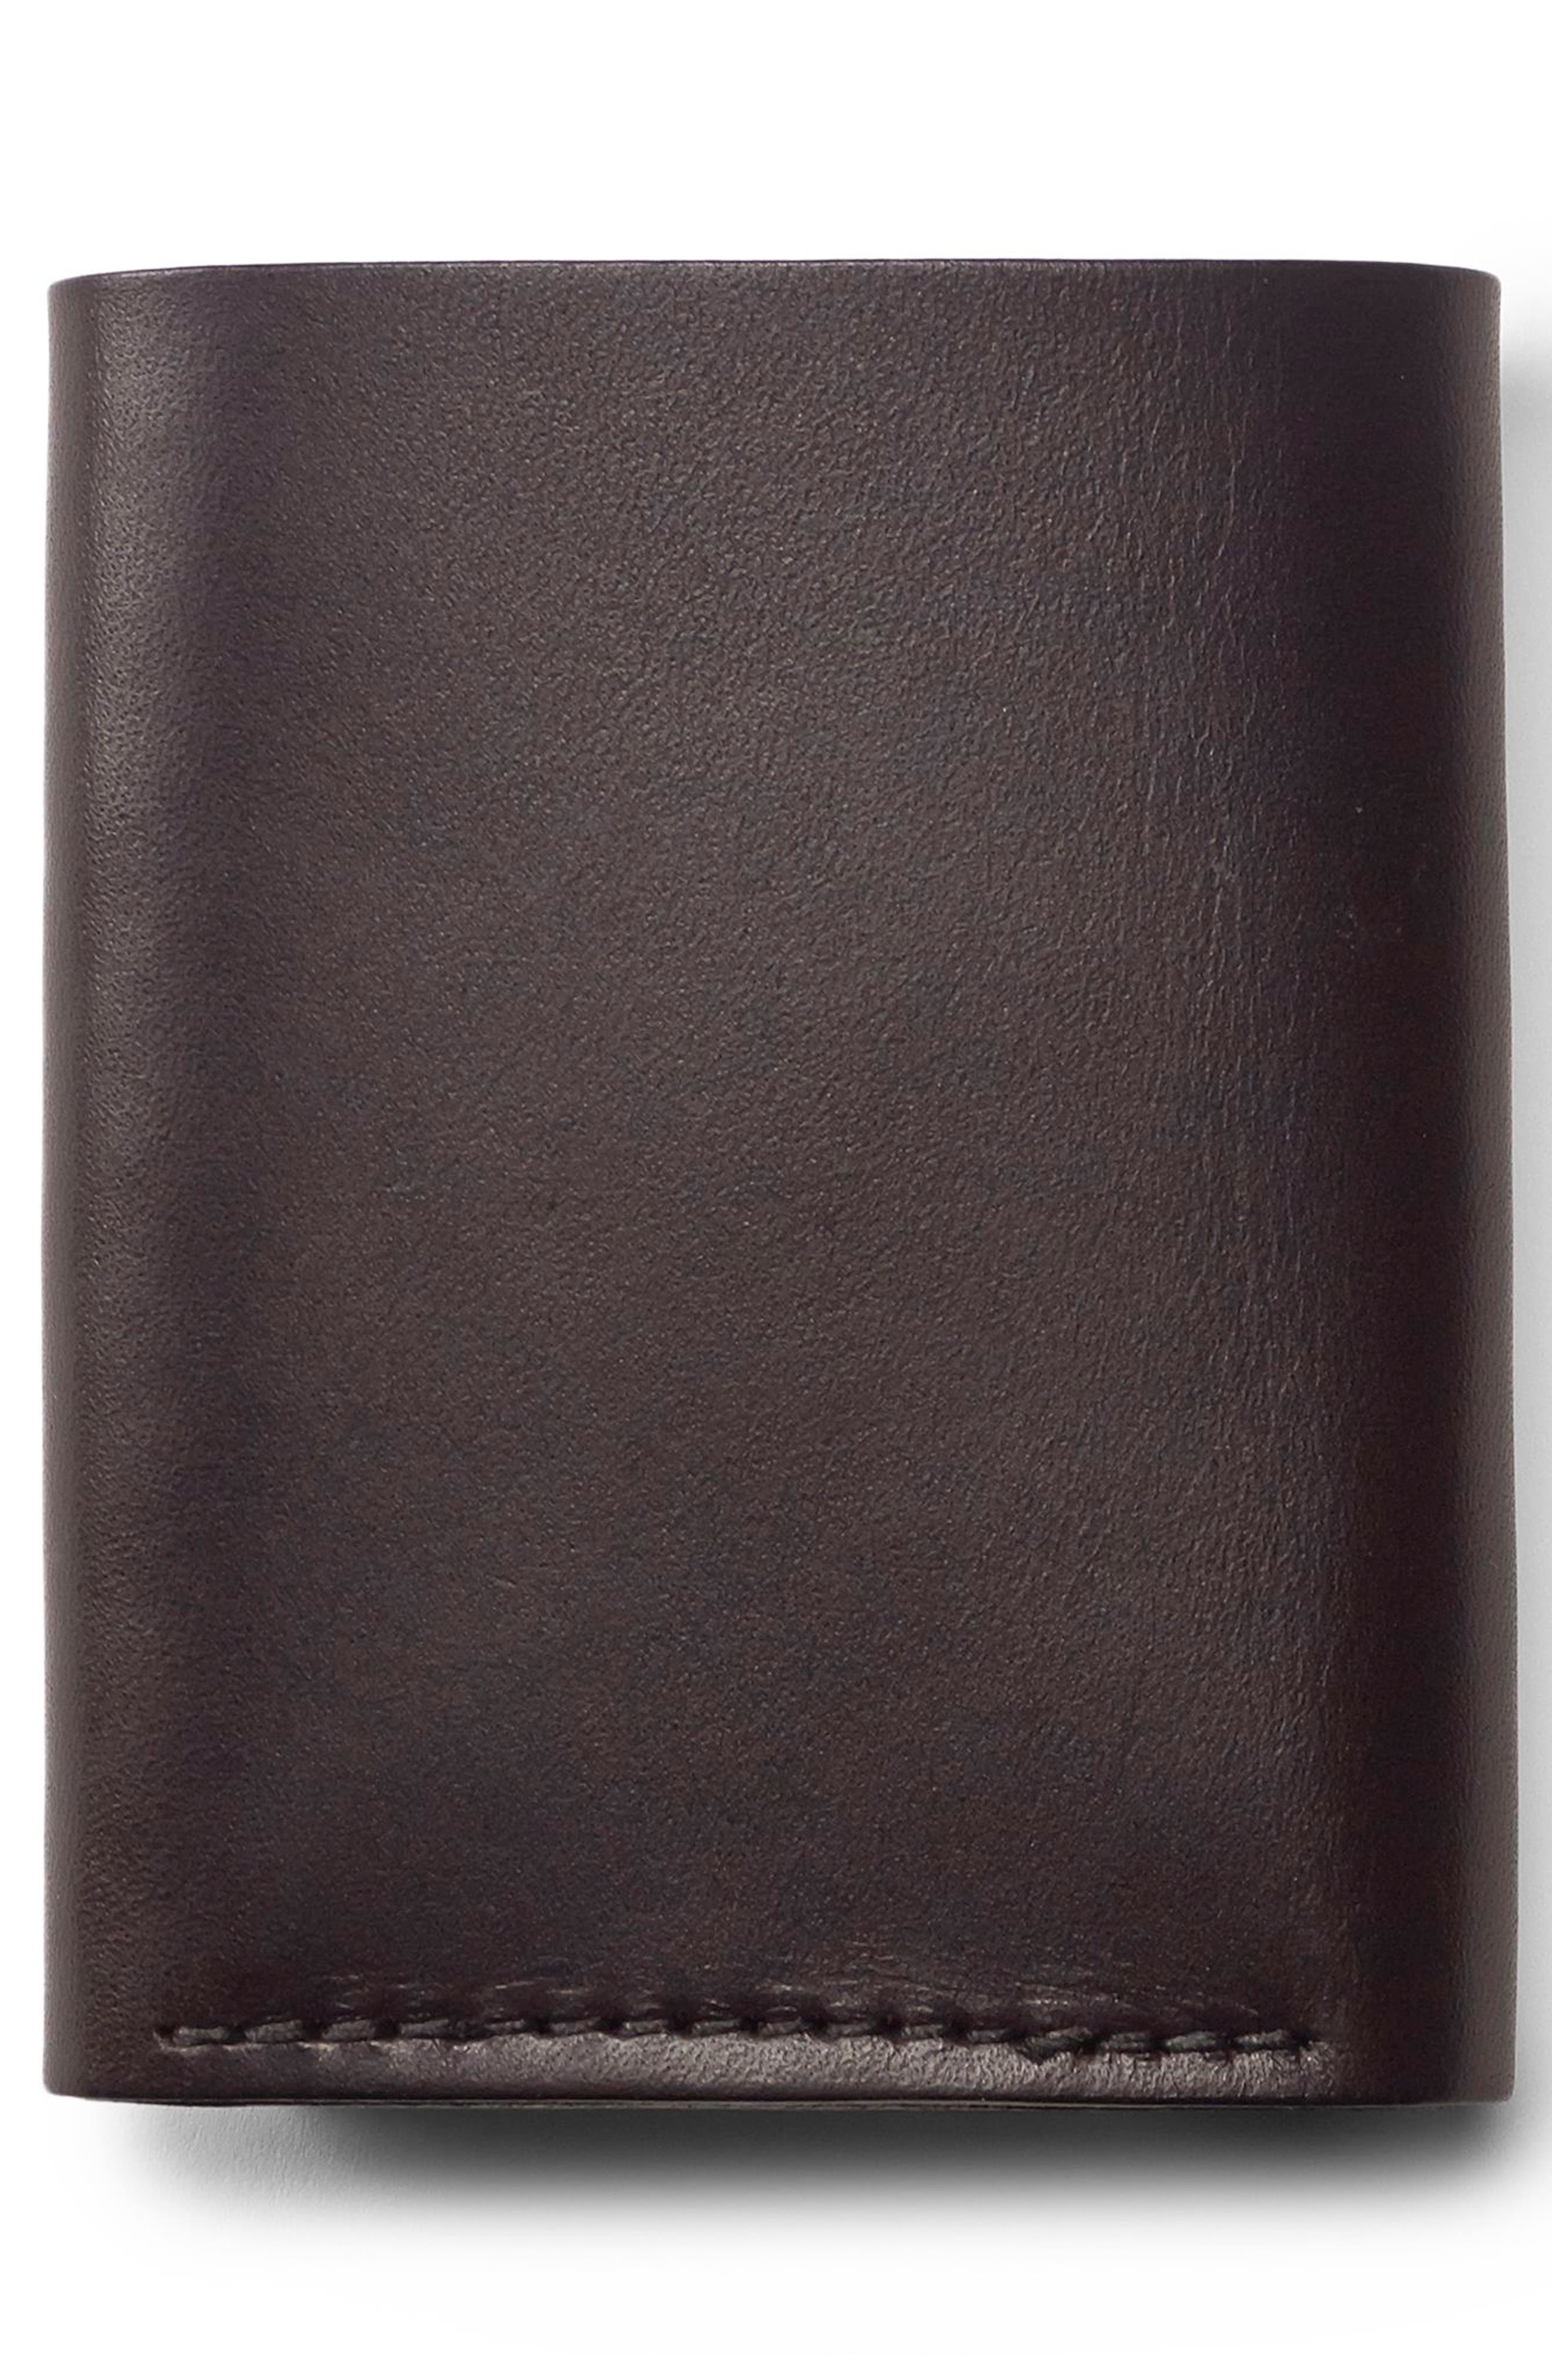 Leather Trifold Leather Wallet,                             Alternate thumbnail 4, color,